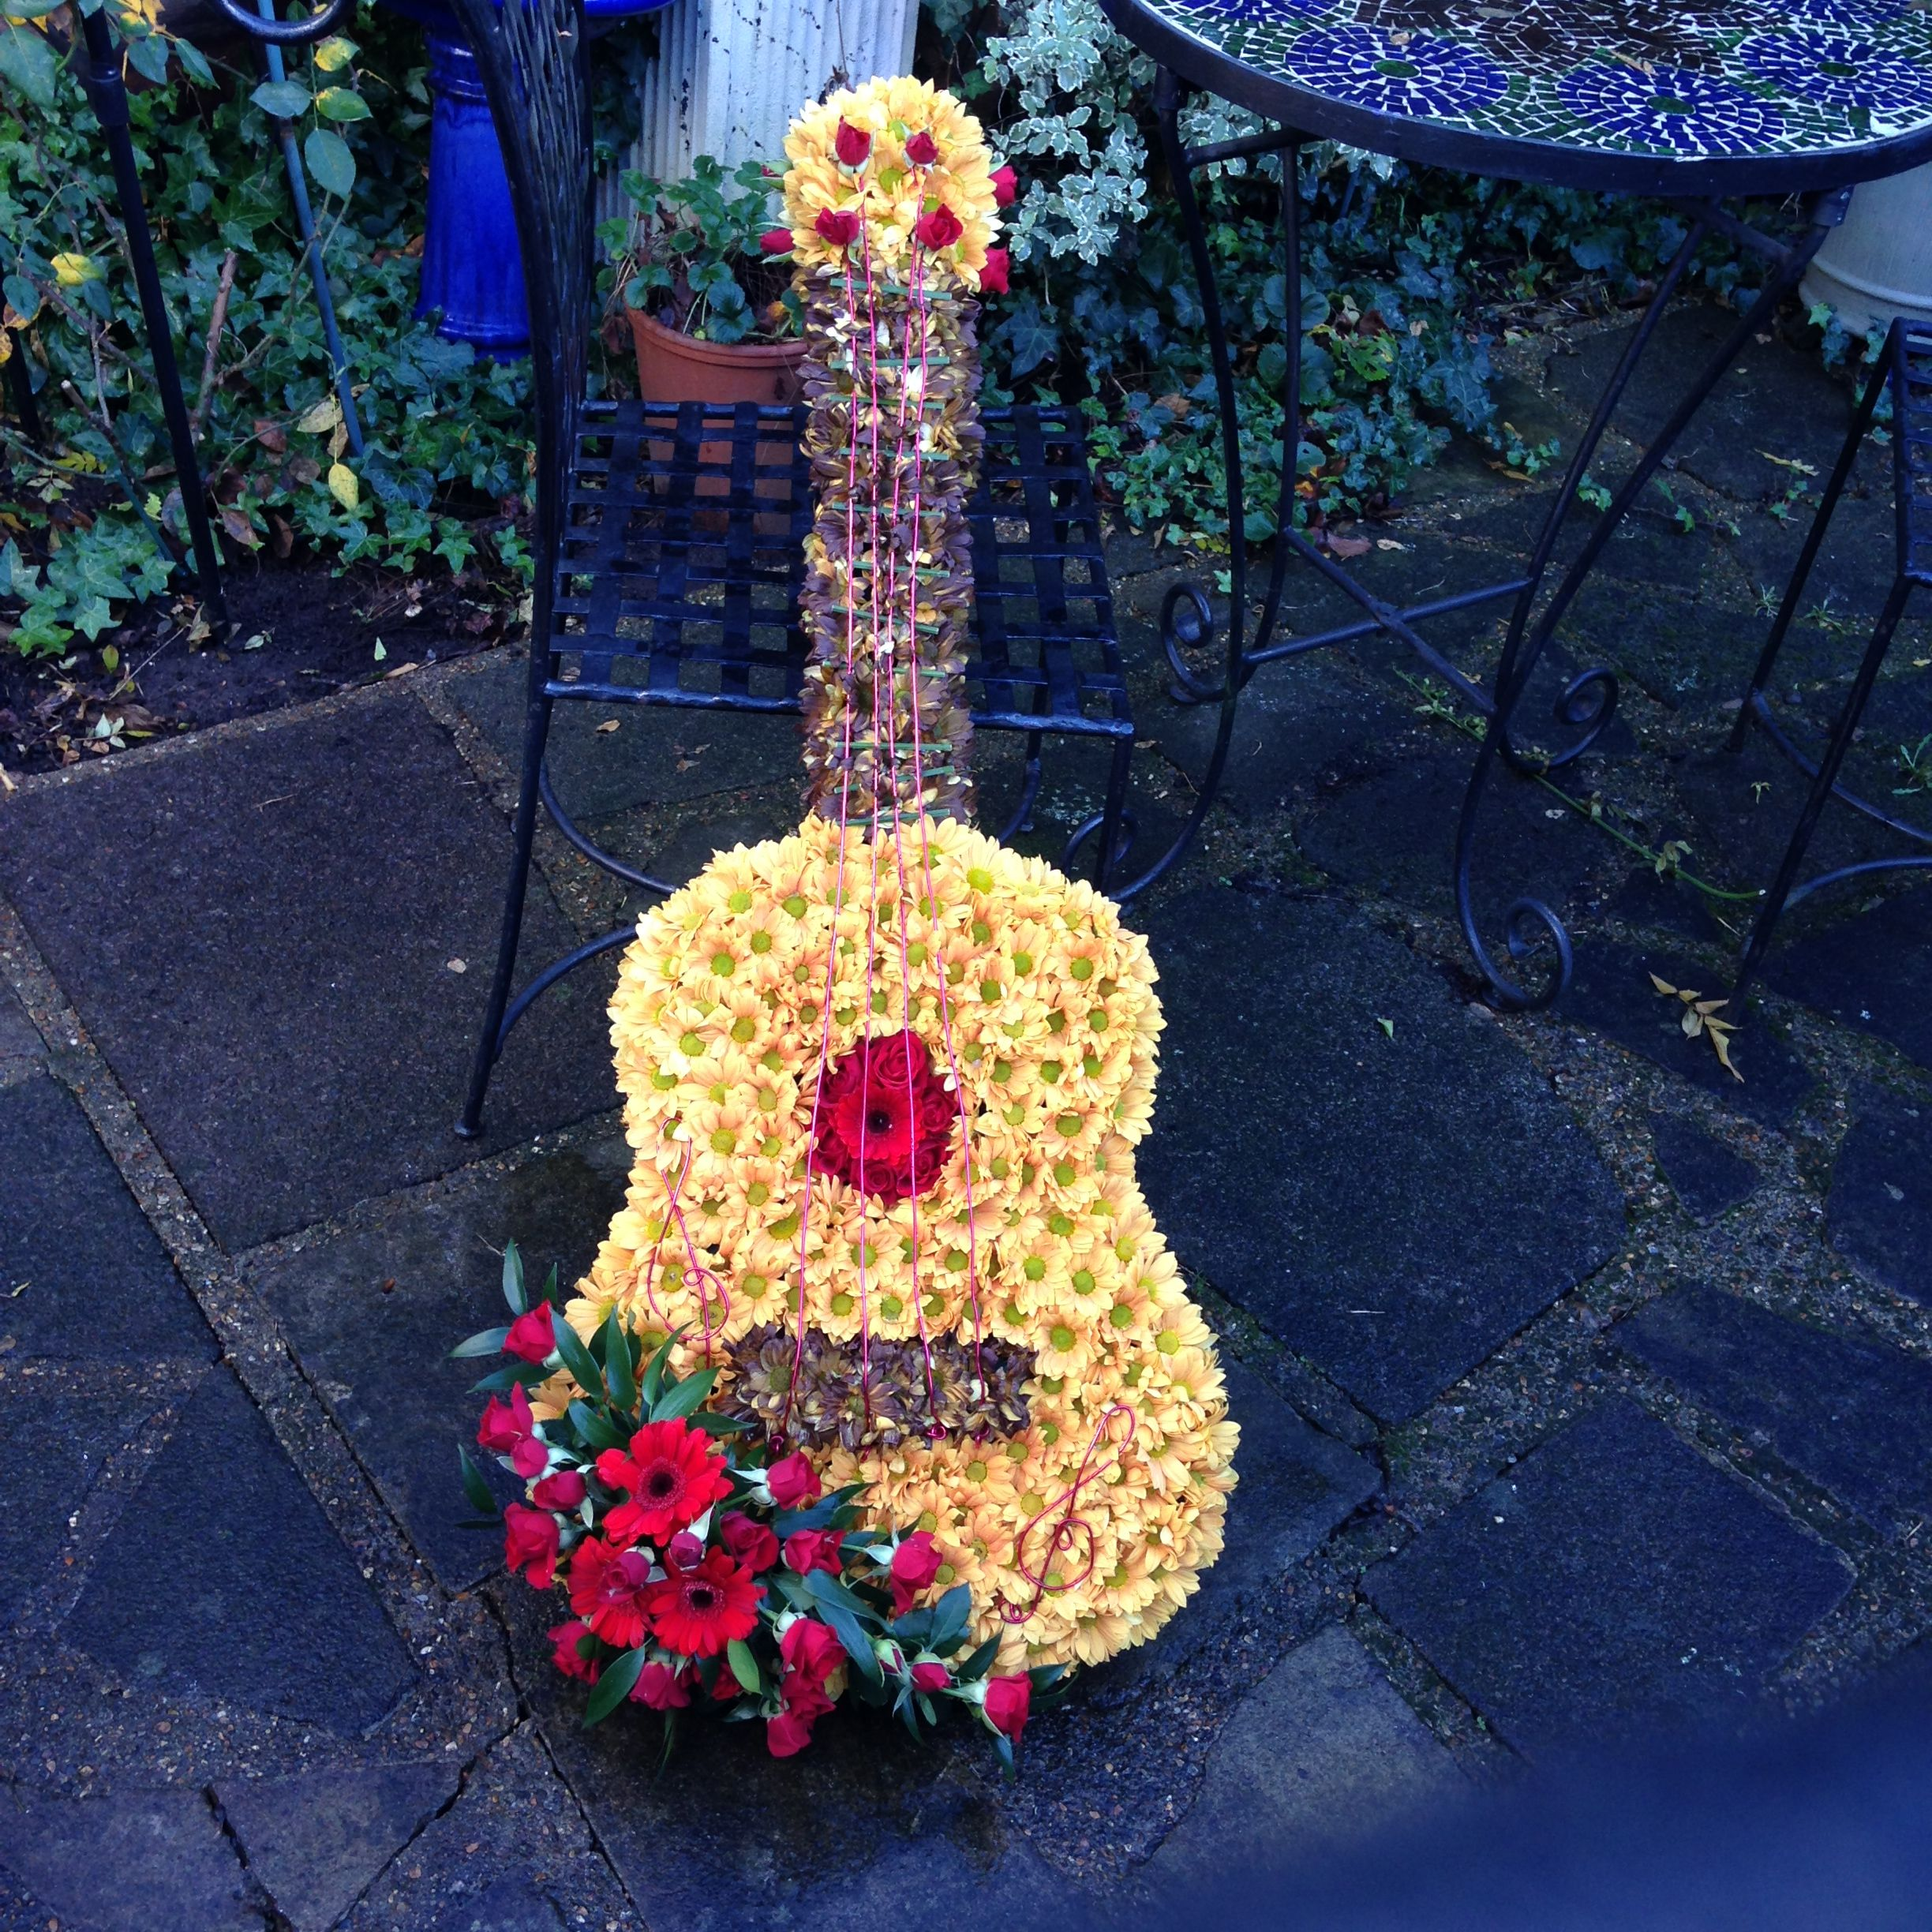 Guitar funeral tribute sympathy flowers pinterest funeral flower guitar funeral tribute izmirmasajfo Images